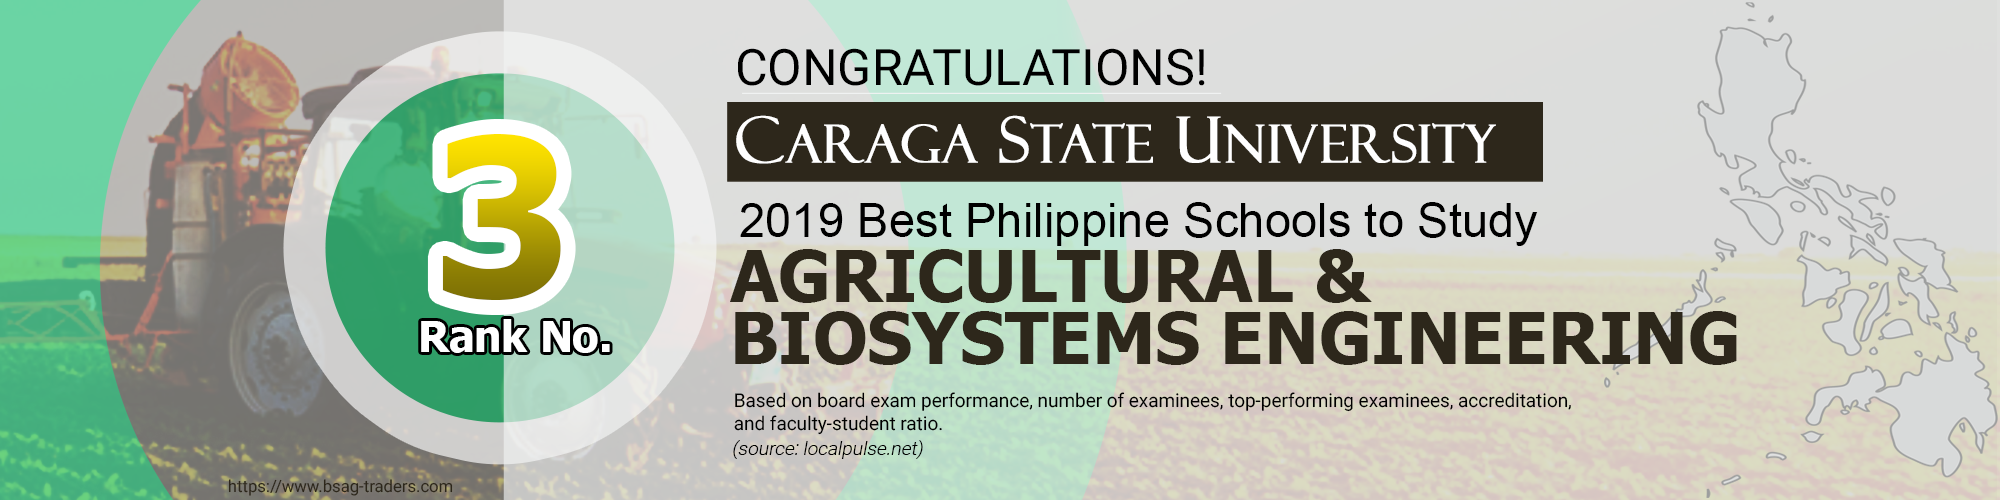 4 rank Best Agricultural & Biosystems Engineering Schools in the Philippines for 2019